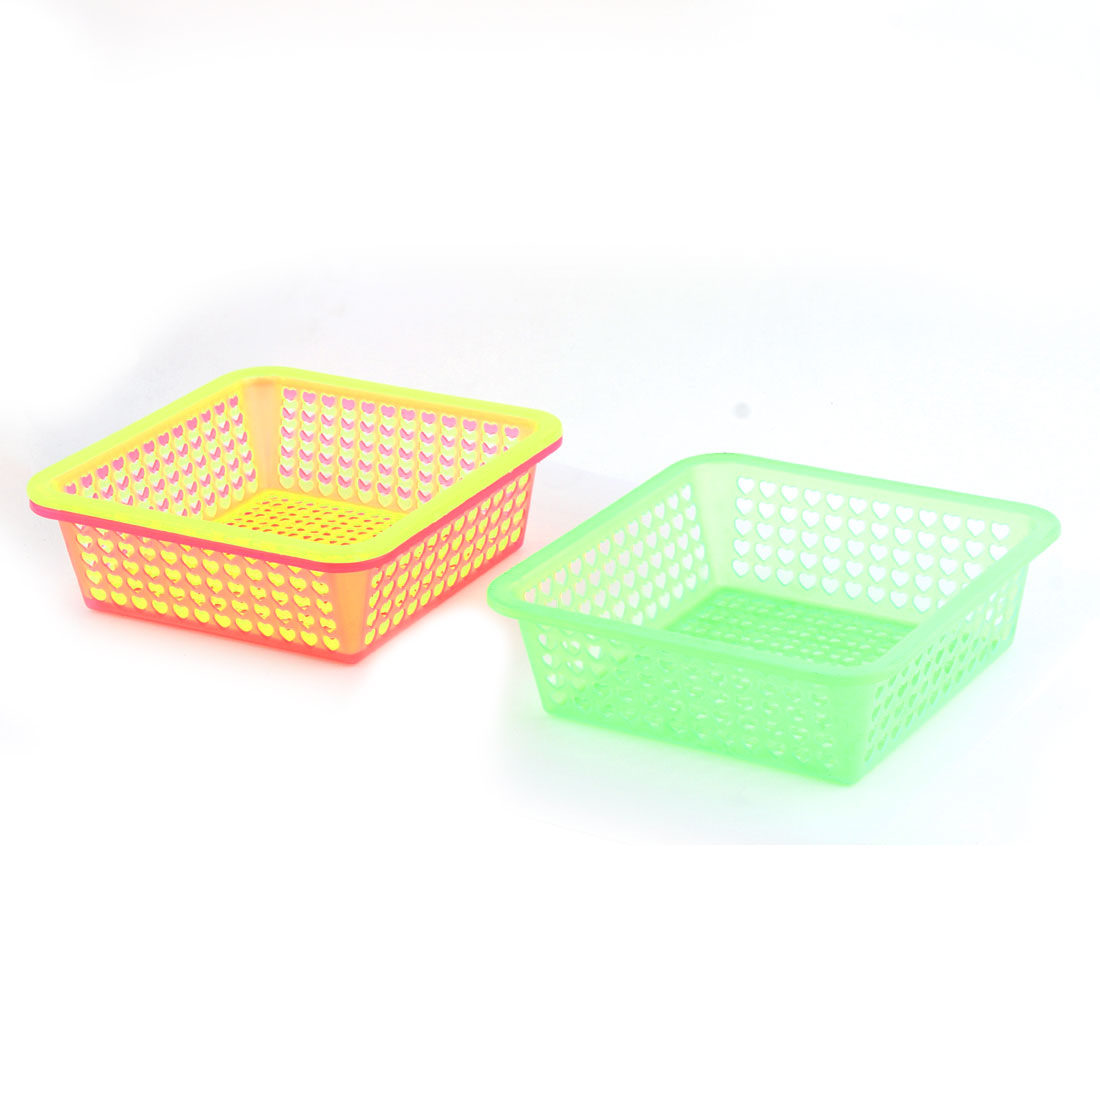 Kitchenware Plastic Square Fruit Vegetable Washing Basket Holder 18 x 18cm 3 Pcs